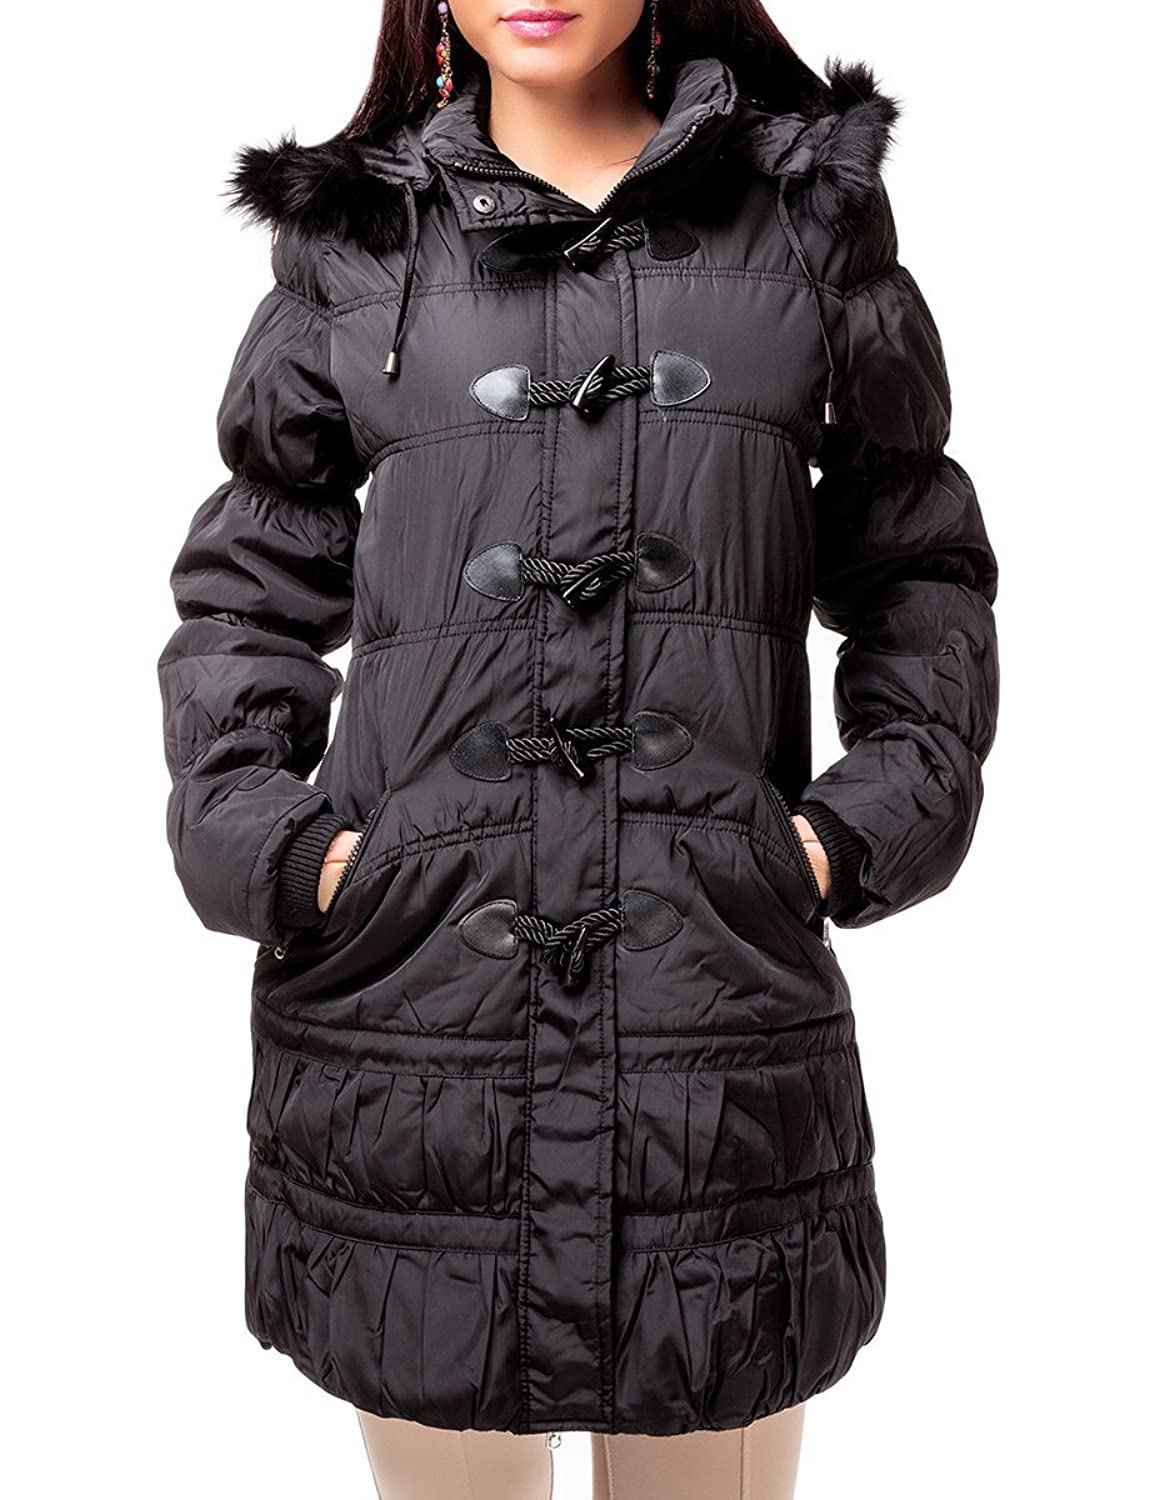 24brands CHICK REBLLE - Damen Winterjacke Dicke Jacke Mantel Steppmantel mit Kapuze & Fell - 2347